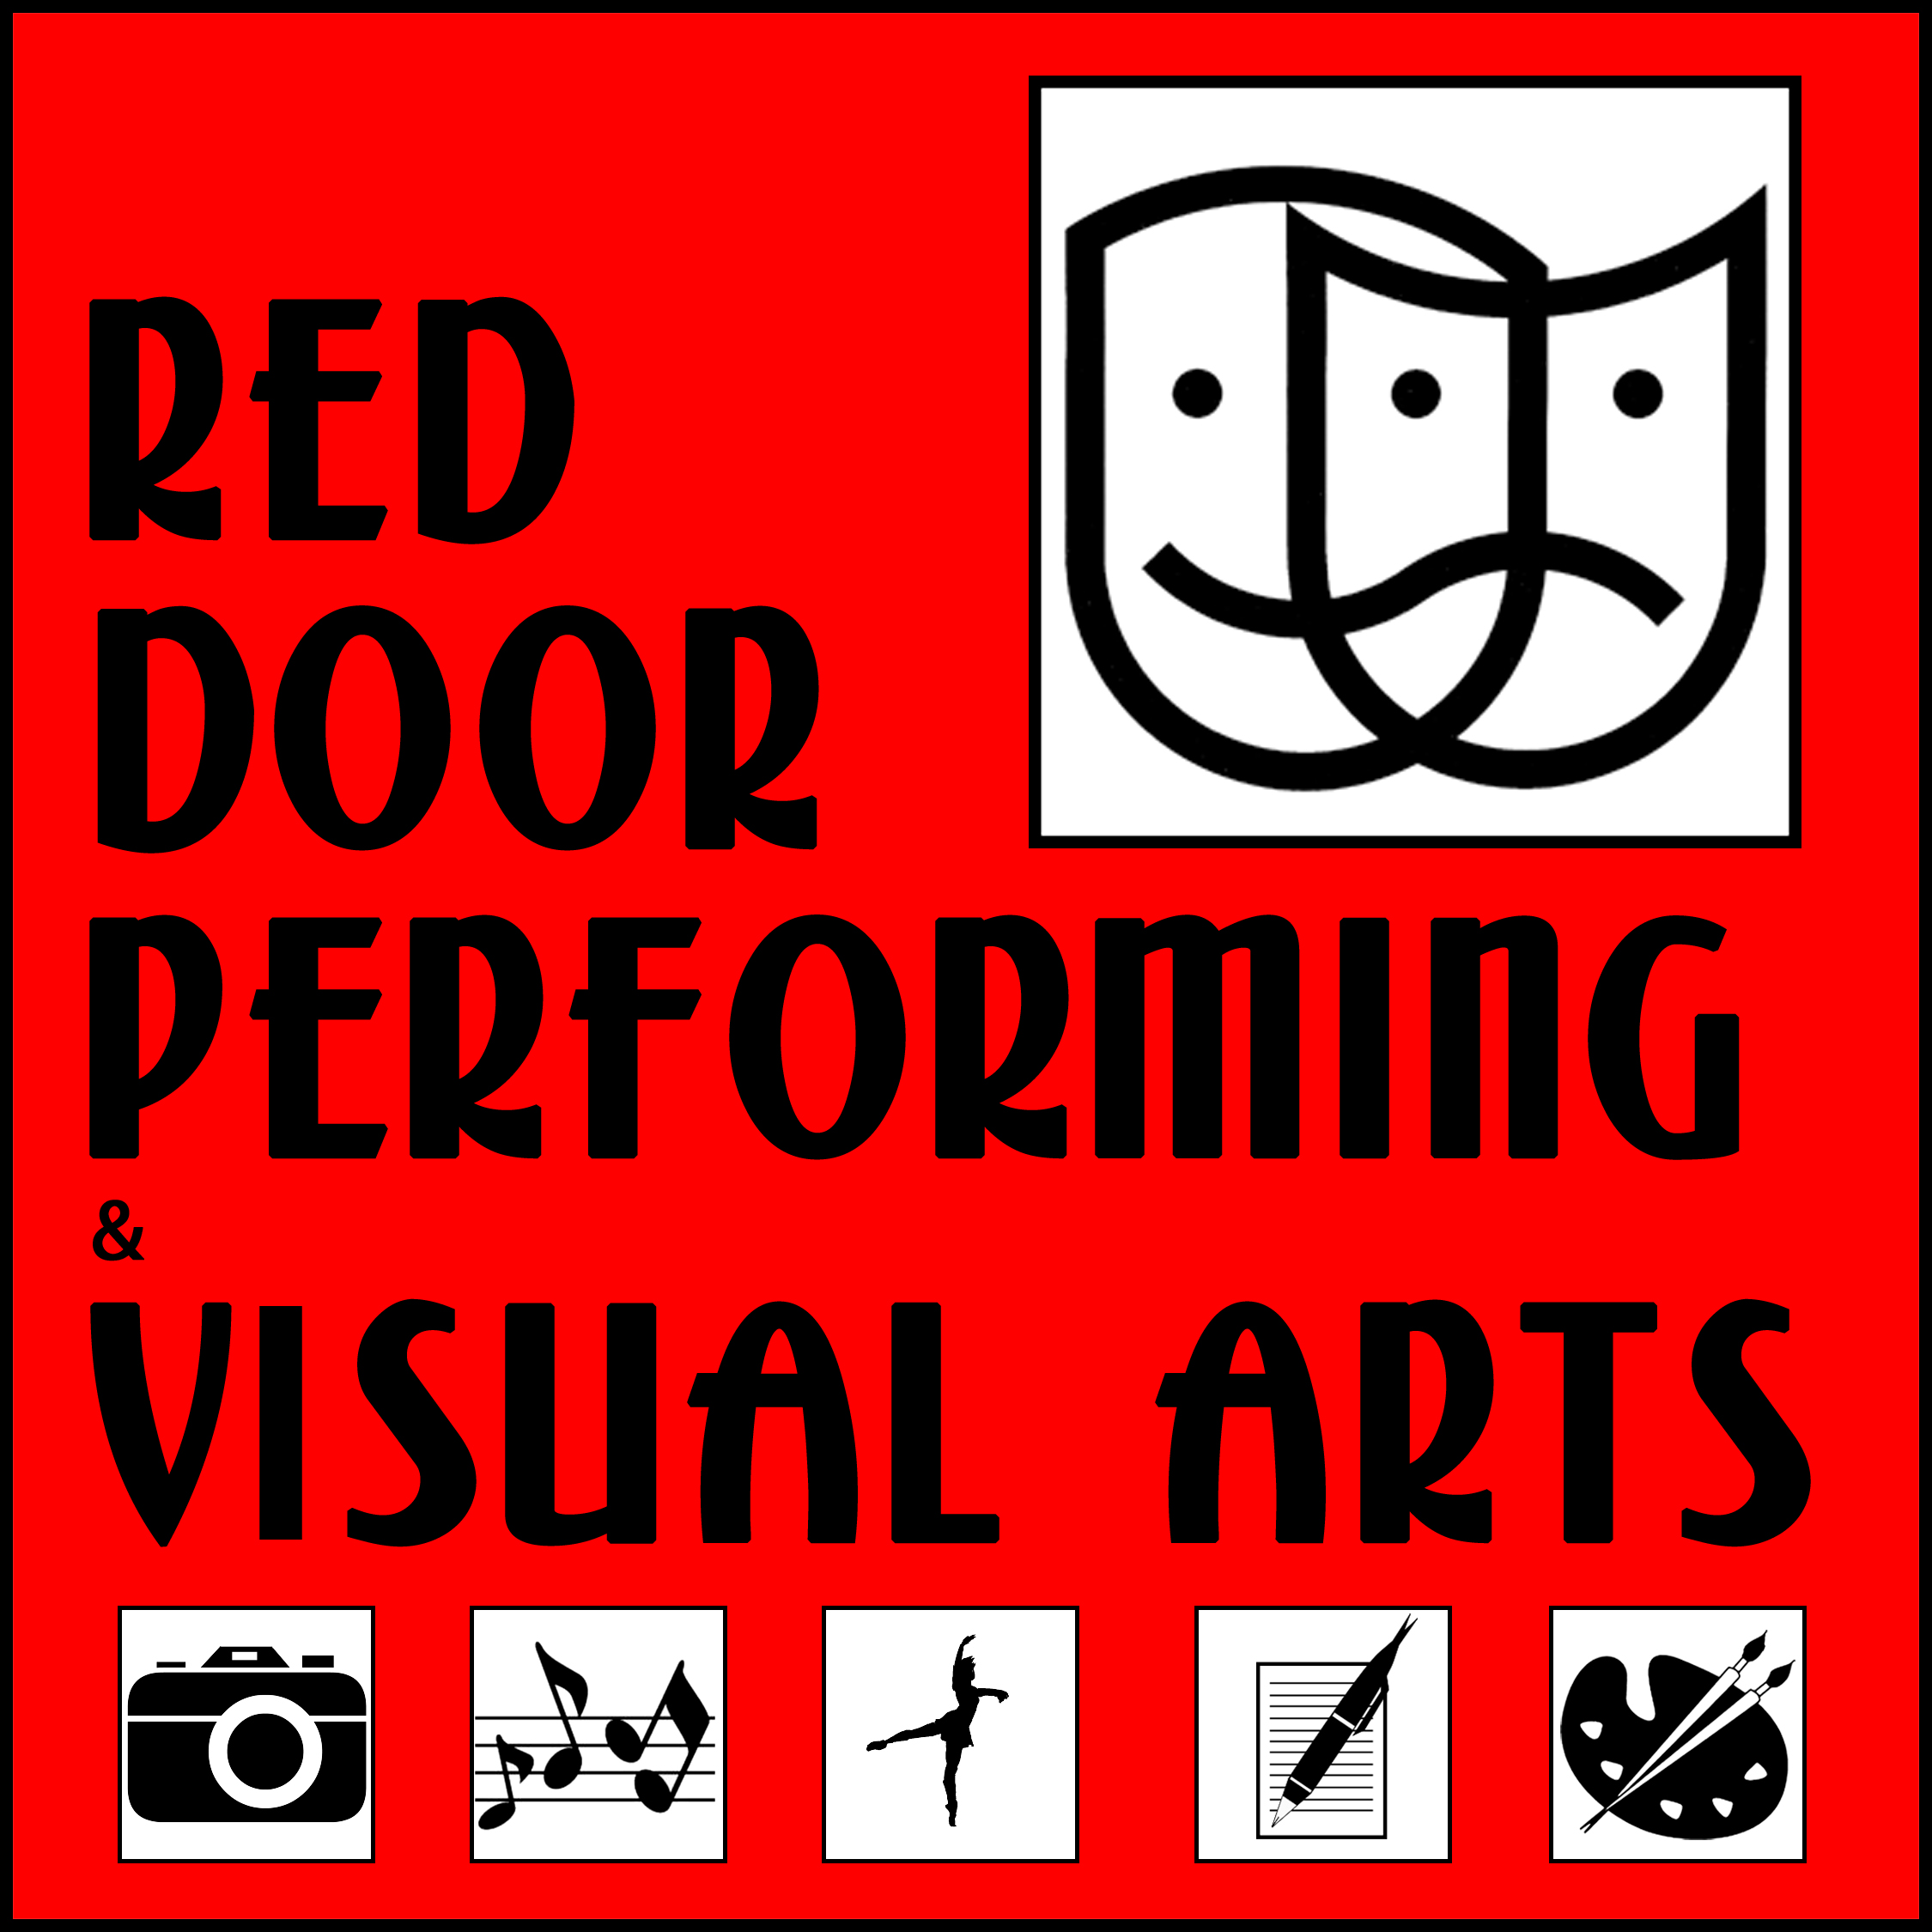 Shows United The Red Door Peforming Visual Arts